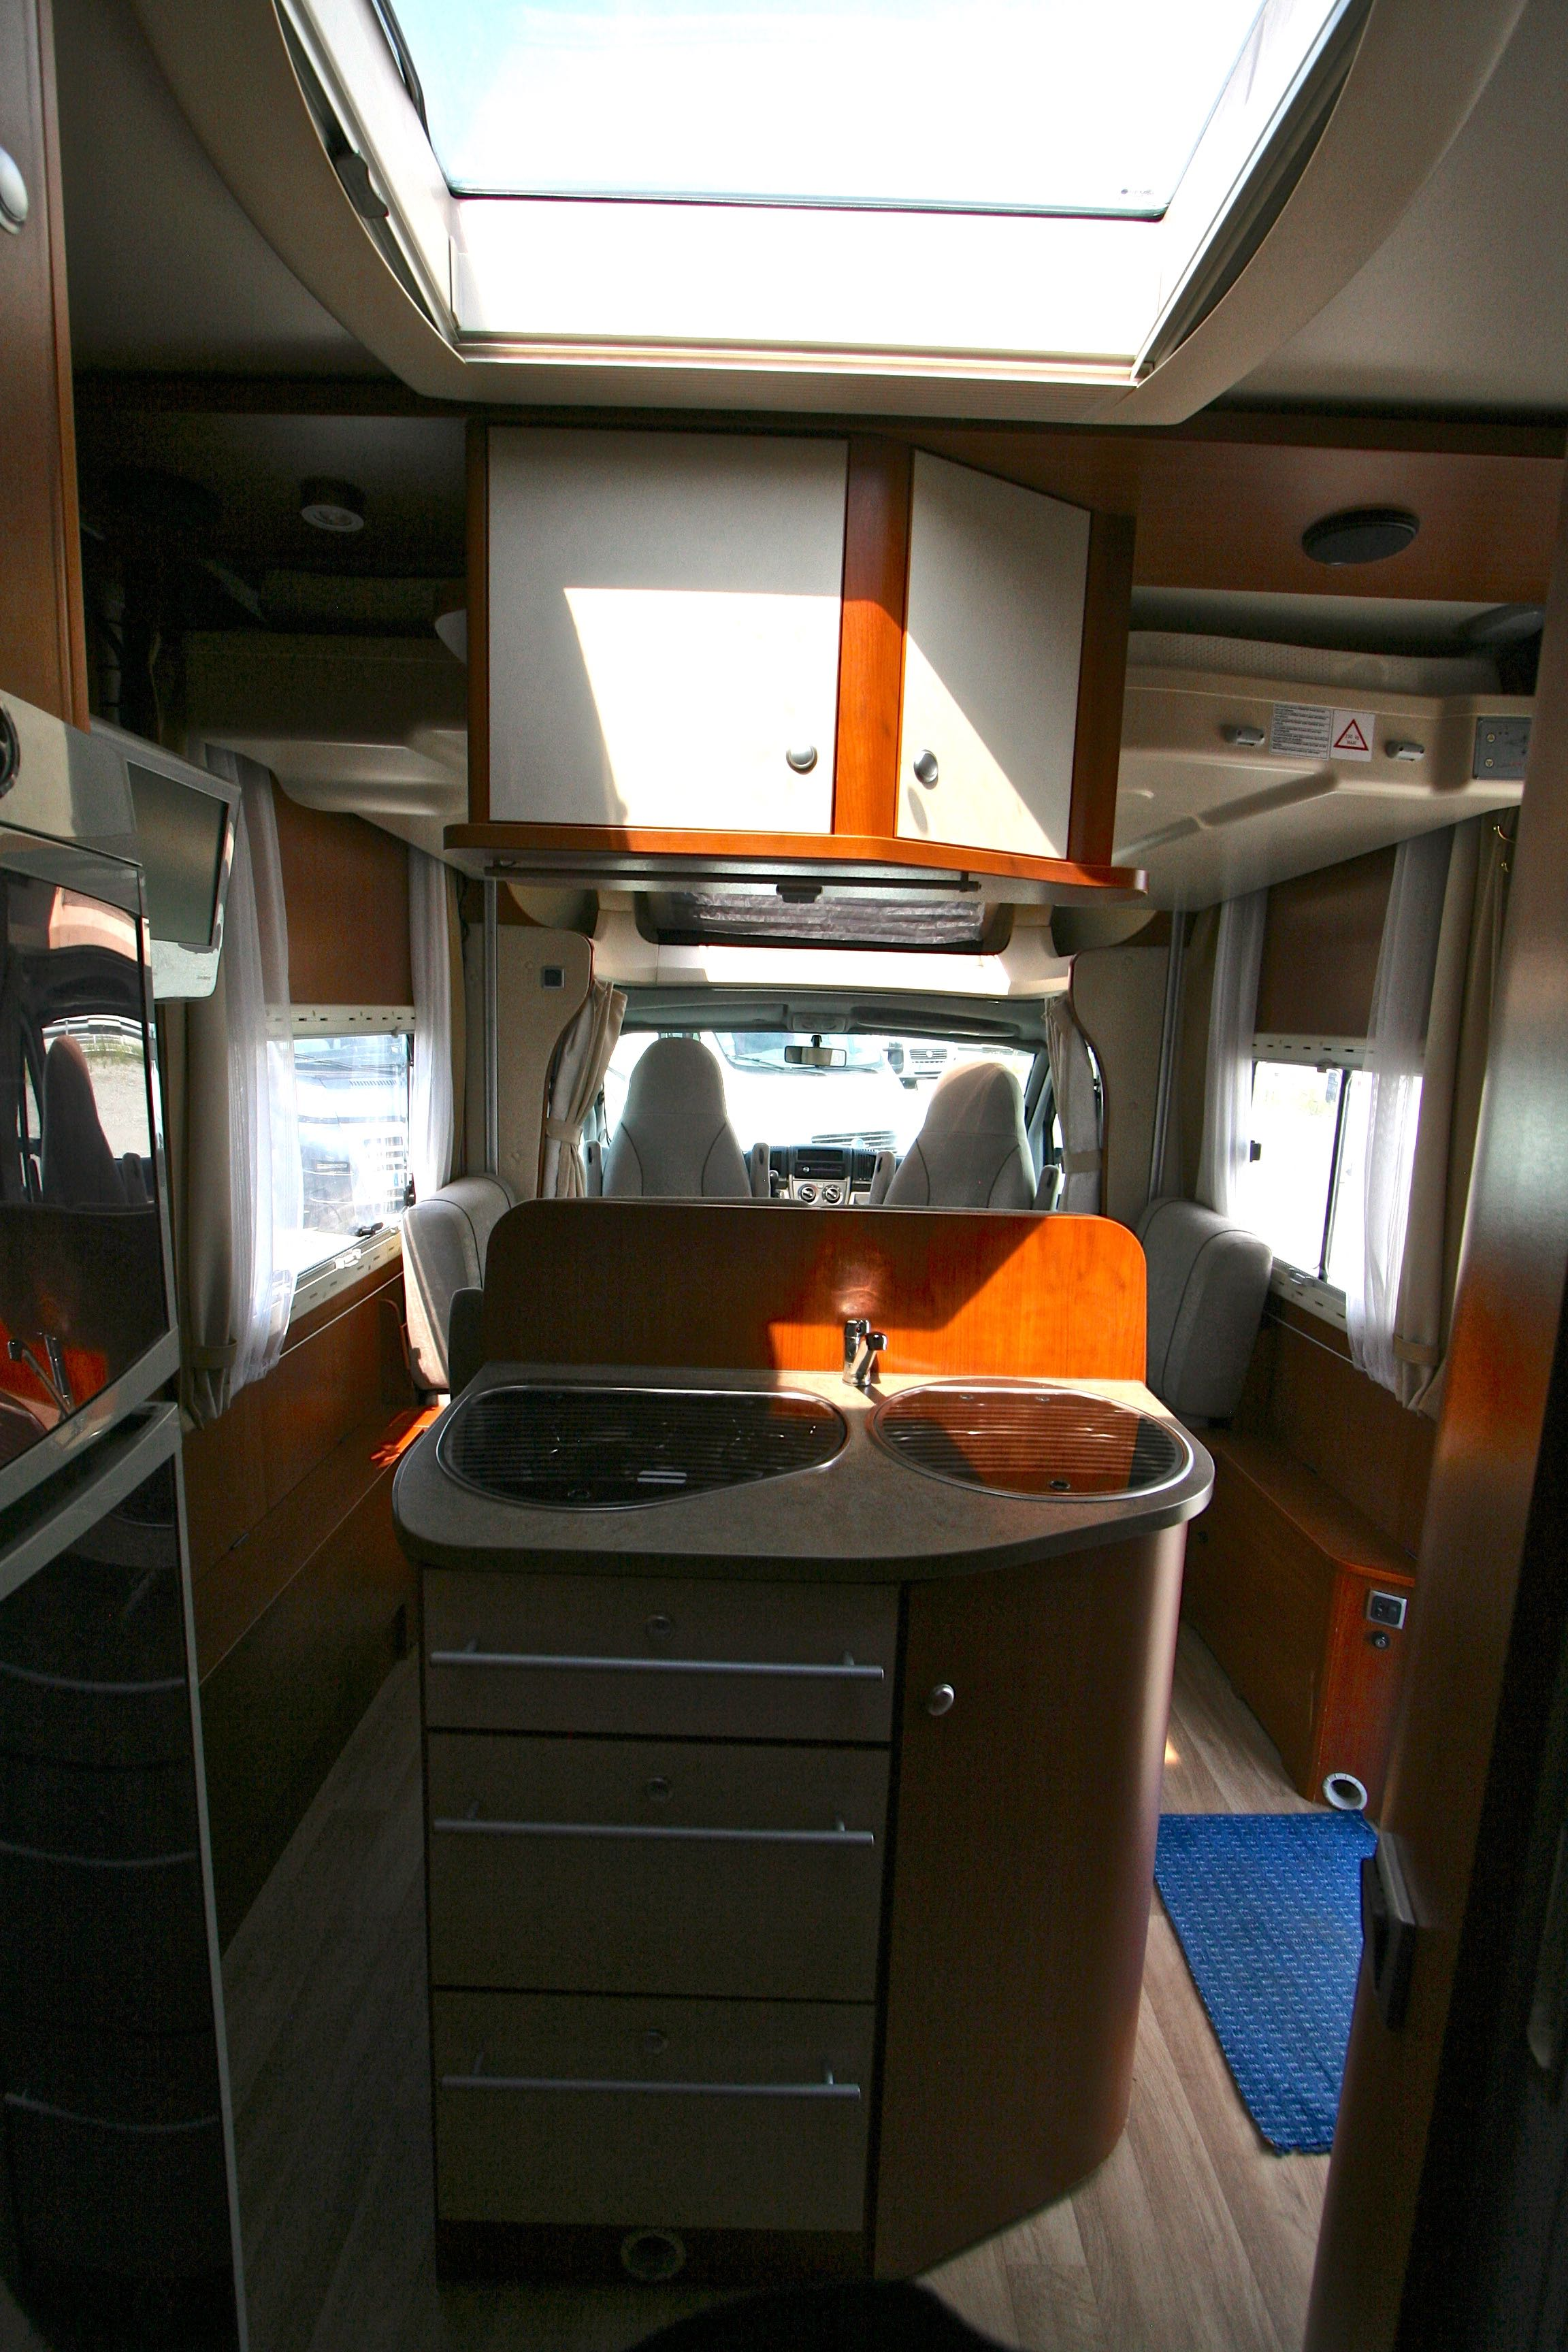 Chausson sweet garage occasion fiat camping car en for Assurance pro garage